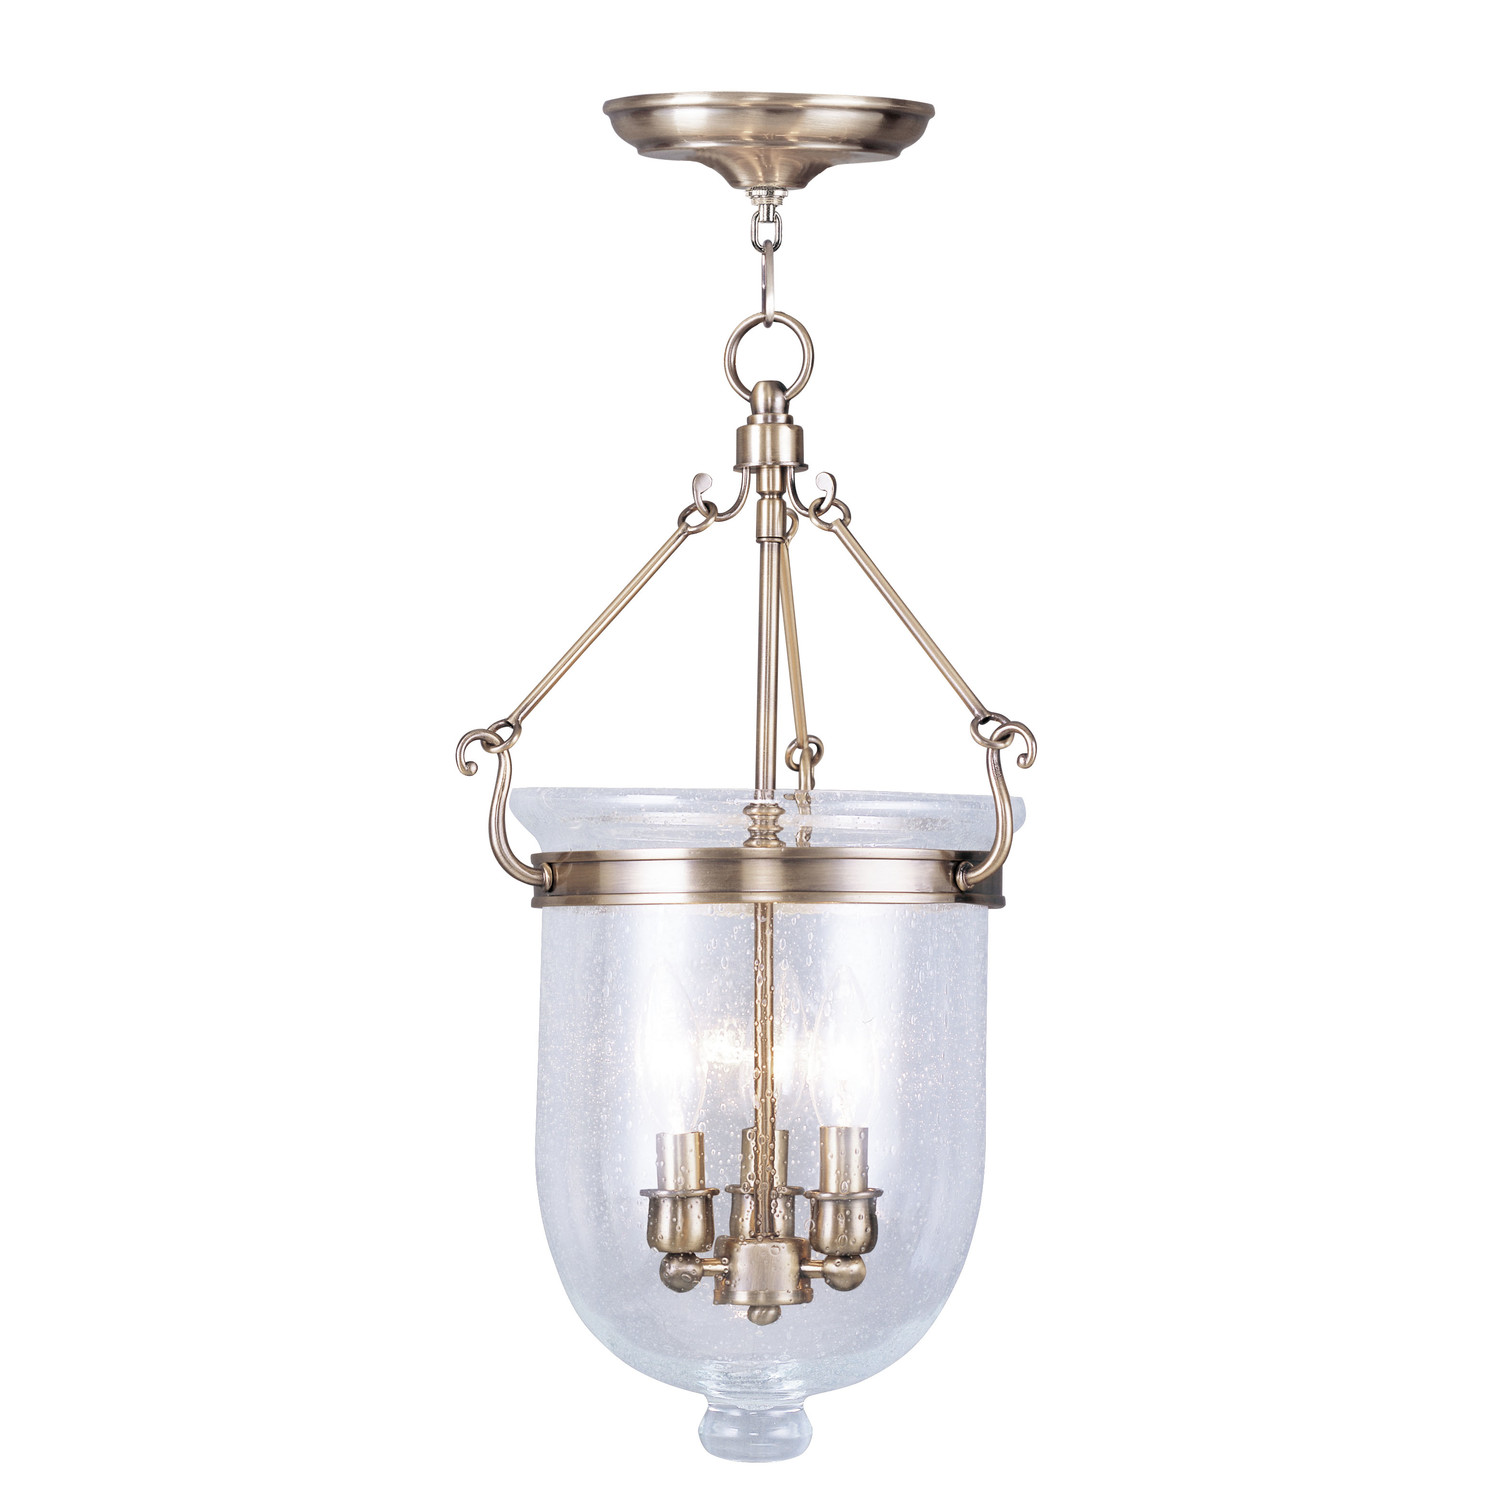 Lovely Livex Lighting Jefferson Foyer Pendant With White Shade For Home Lighting Ideas